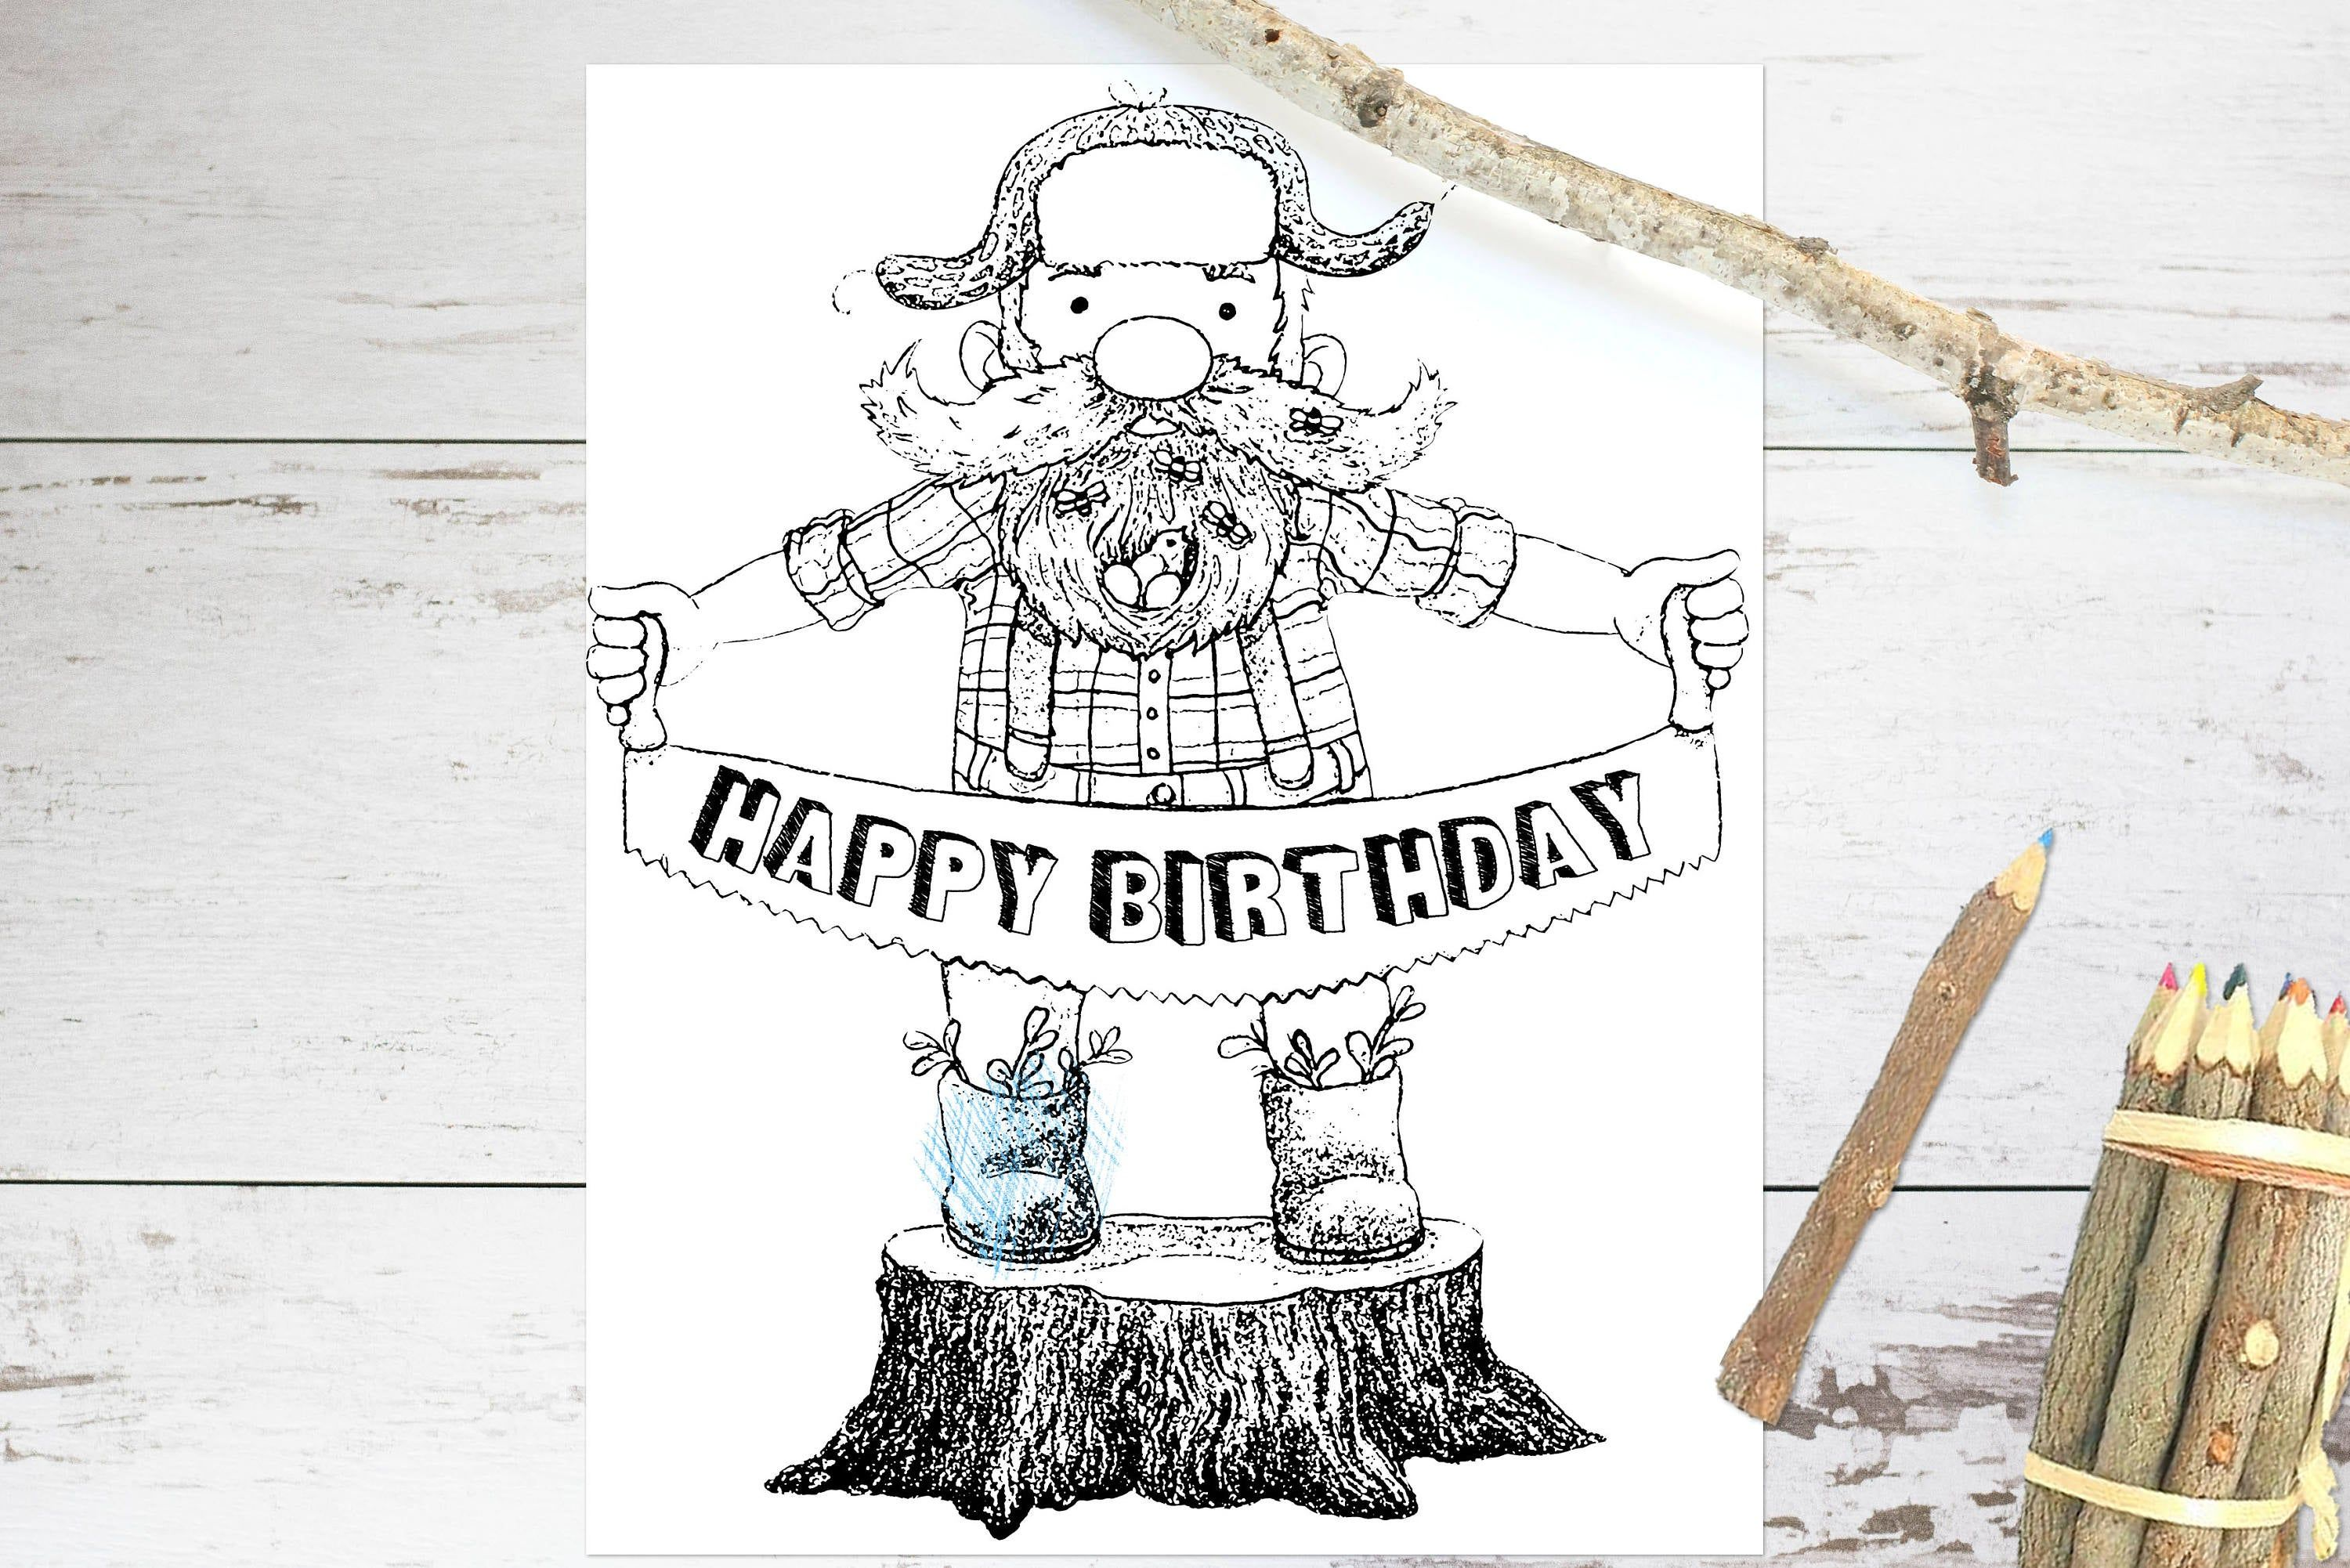 Fun Addition To My Etsy Shop Lumberjack Coloring Page Lumberjack Birthday Party Activity Birthday Party Activities Lumberjack Birthday Party Party Activities